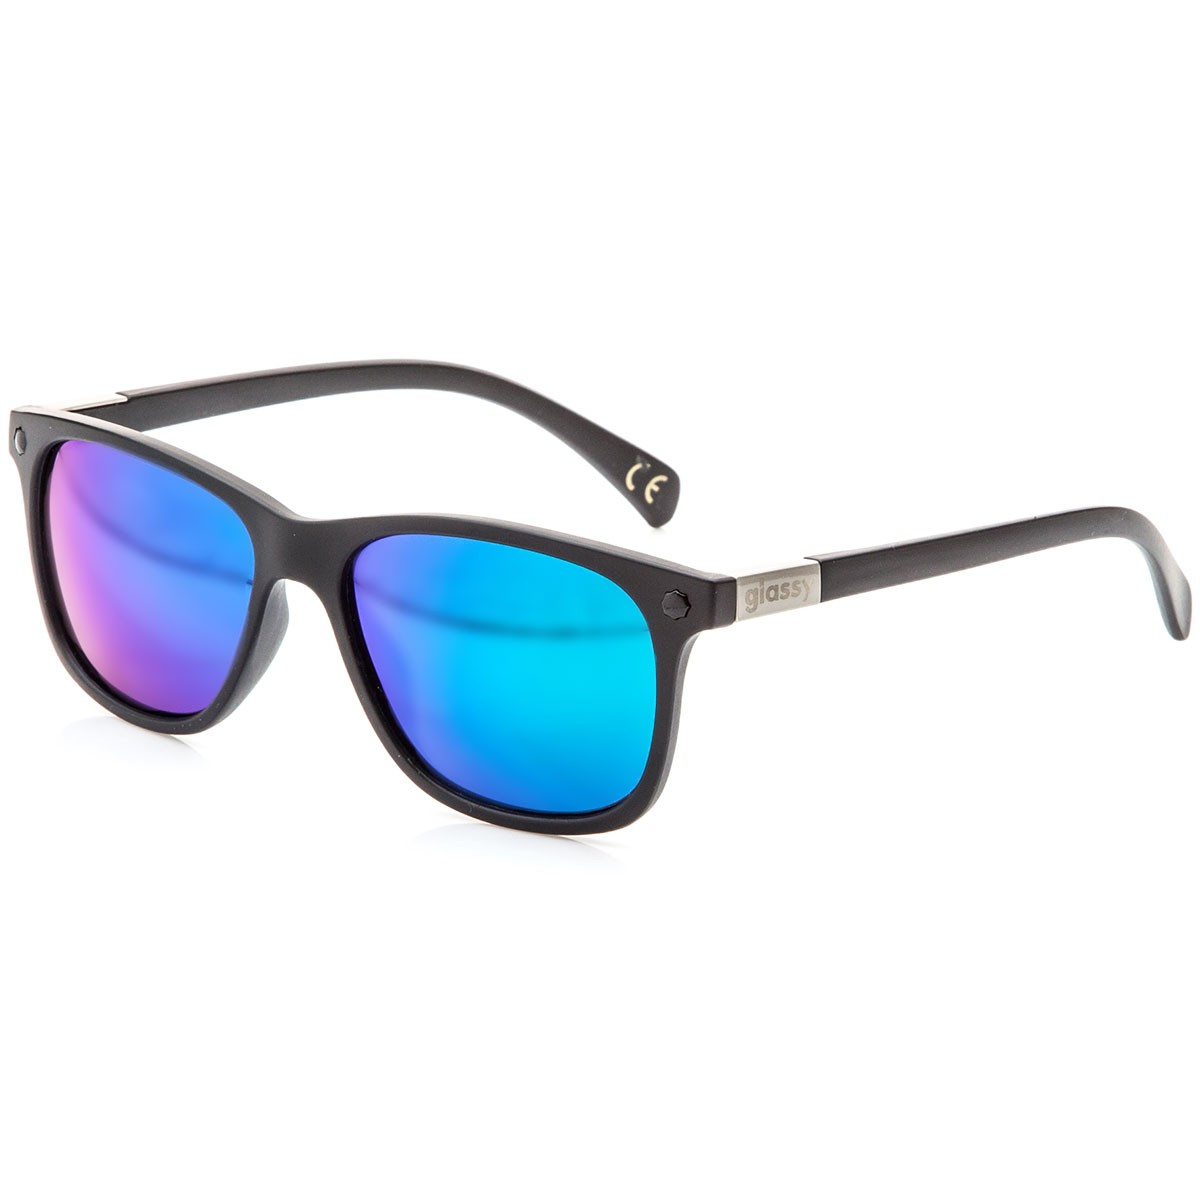 Glassy Biebel Sunglasses - Black/Green